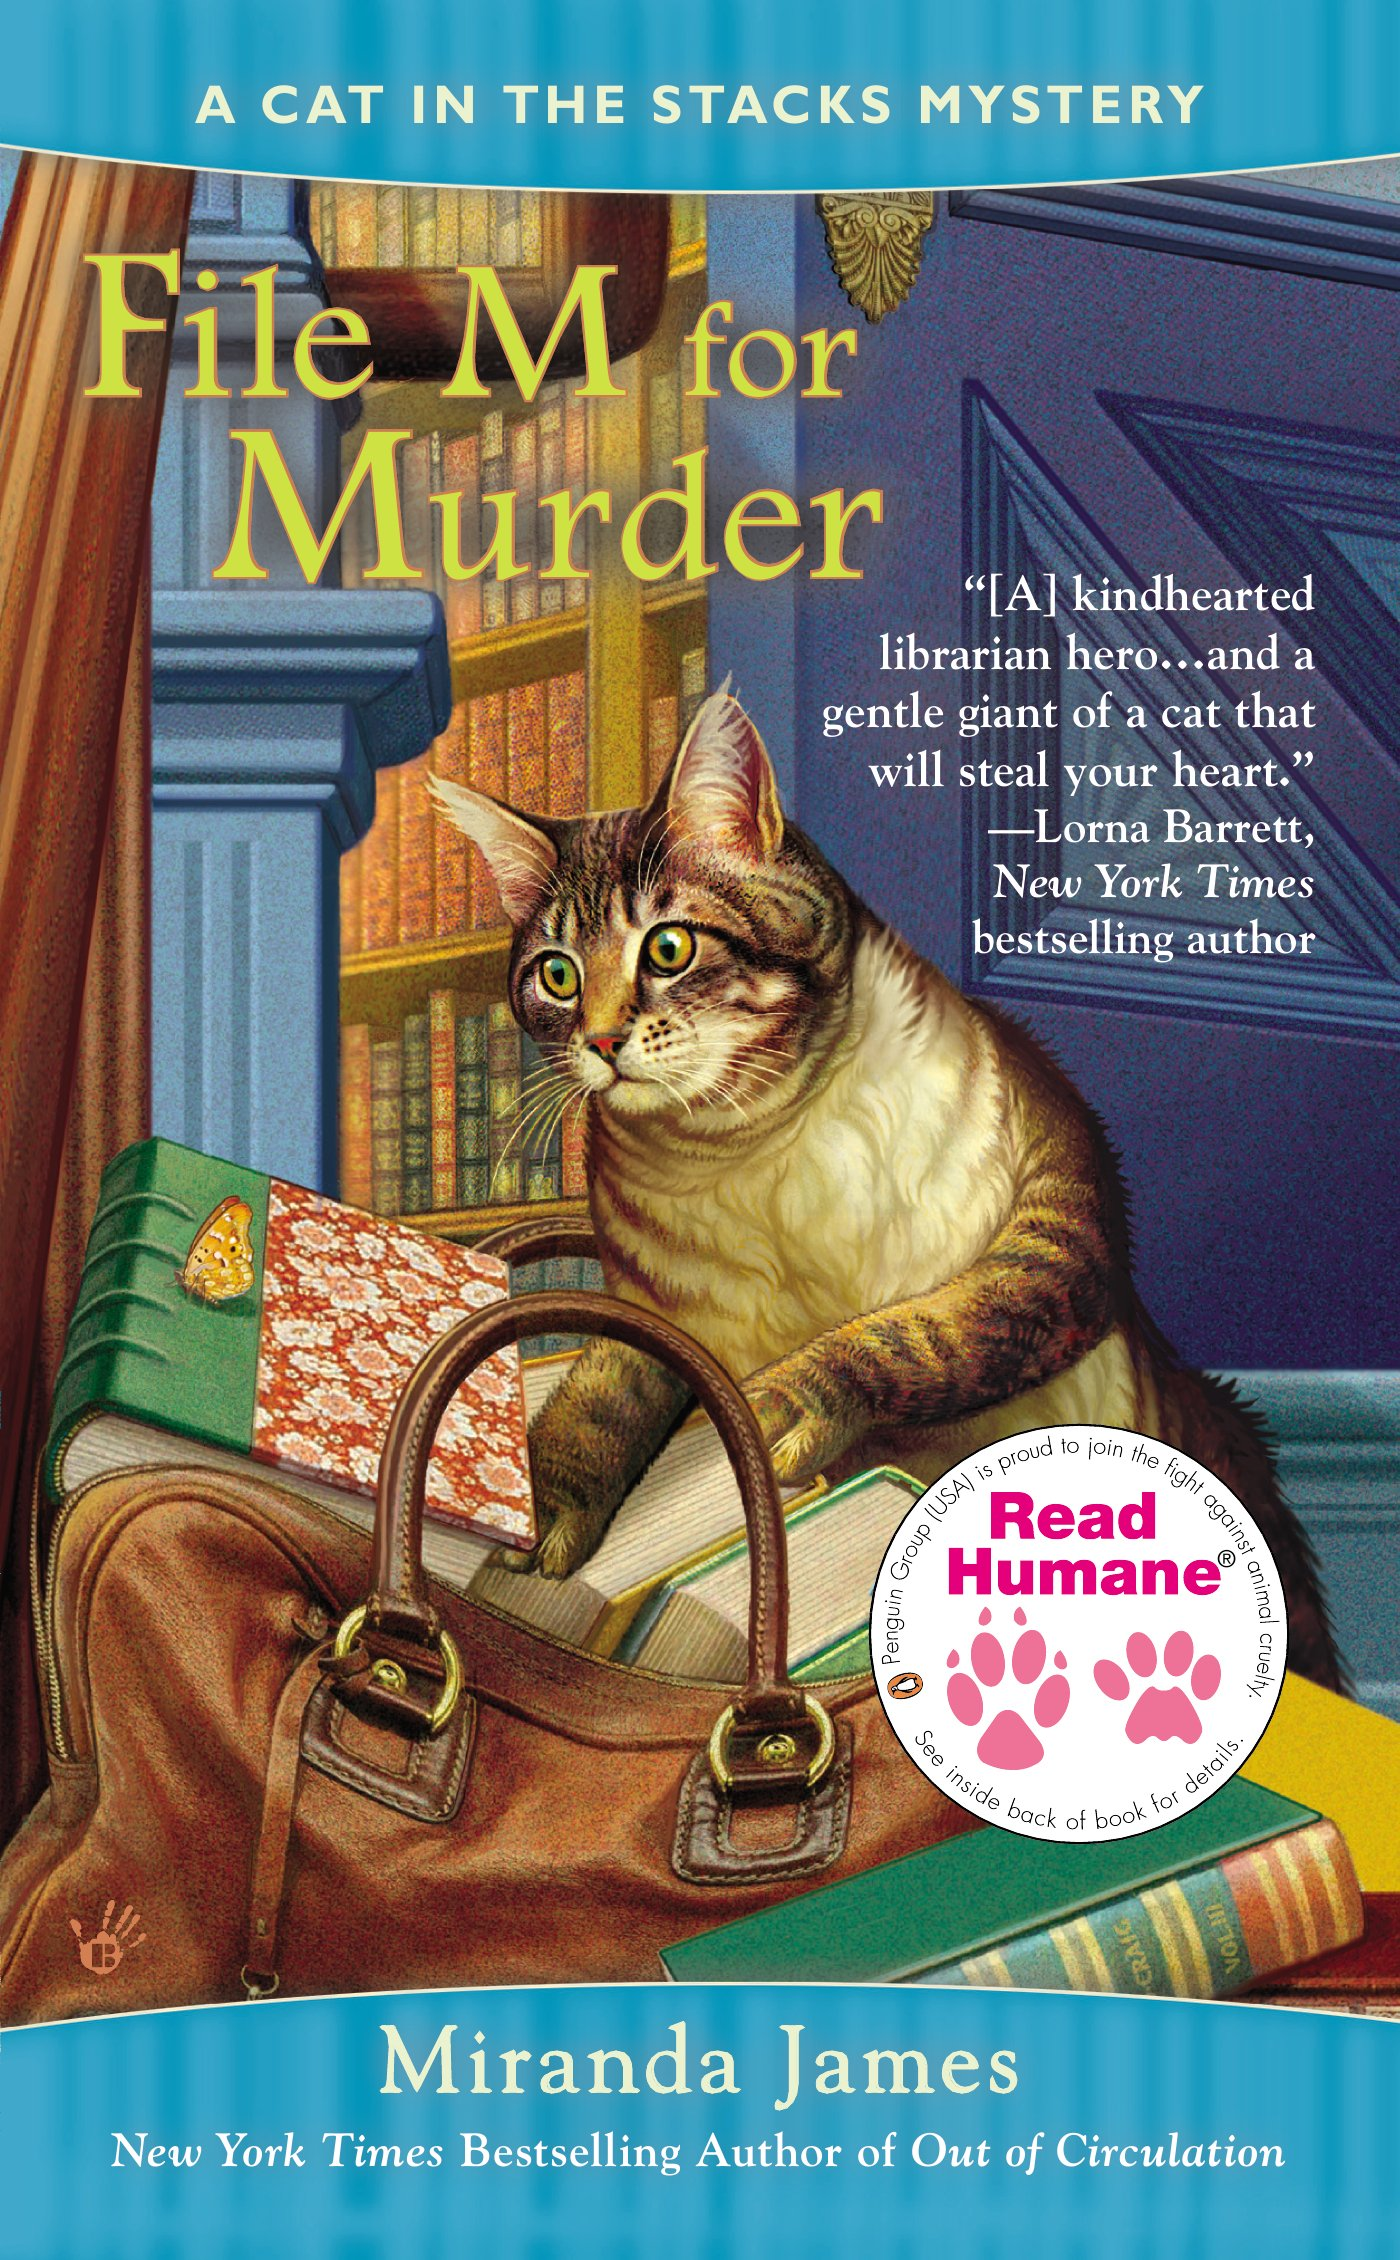 Read Humane File M for Murder (Cat in the Stacks Mystery) pdf epub